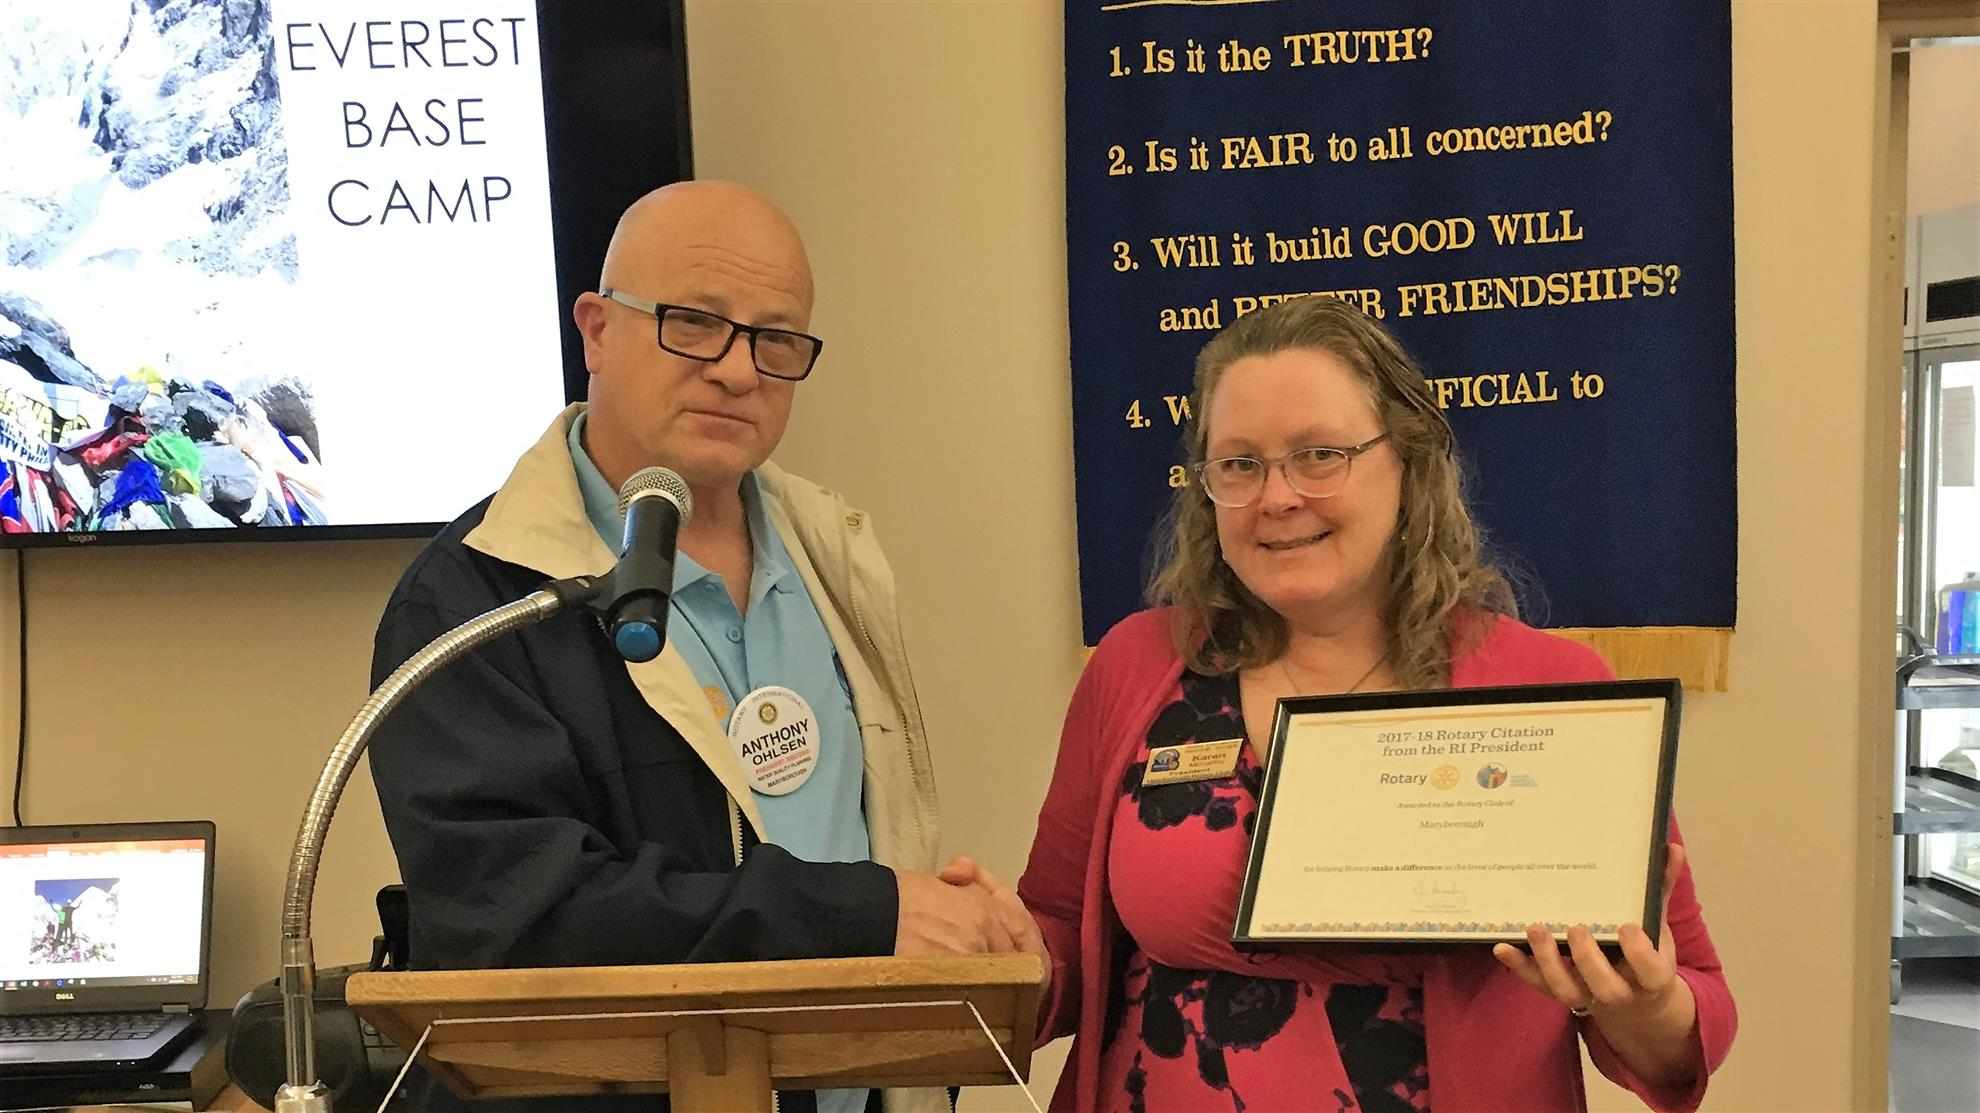 District Governor Anthony was on hand at Thursday s meeting to present our club with the International President Ian Riley s Citation for the 2017 18